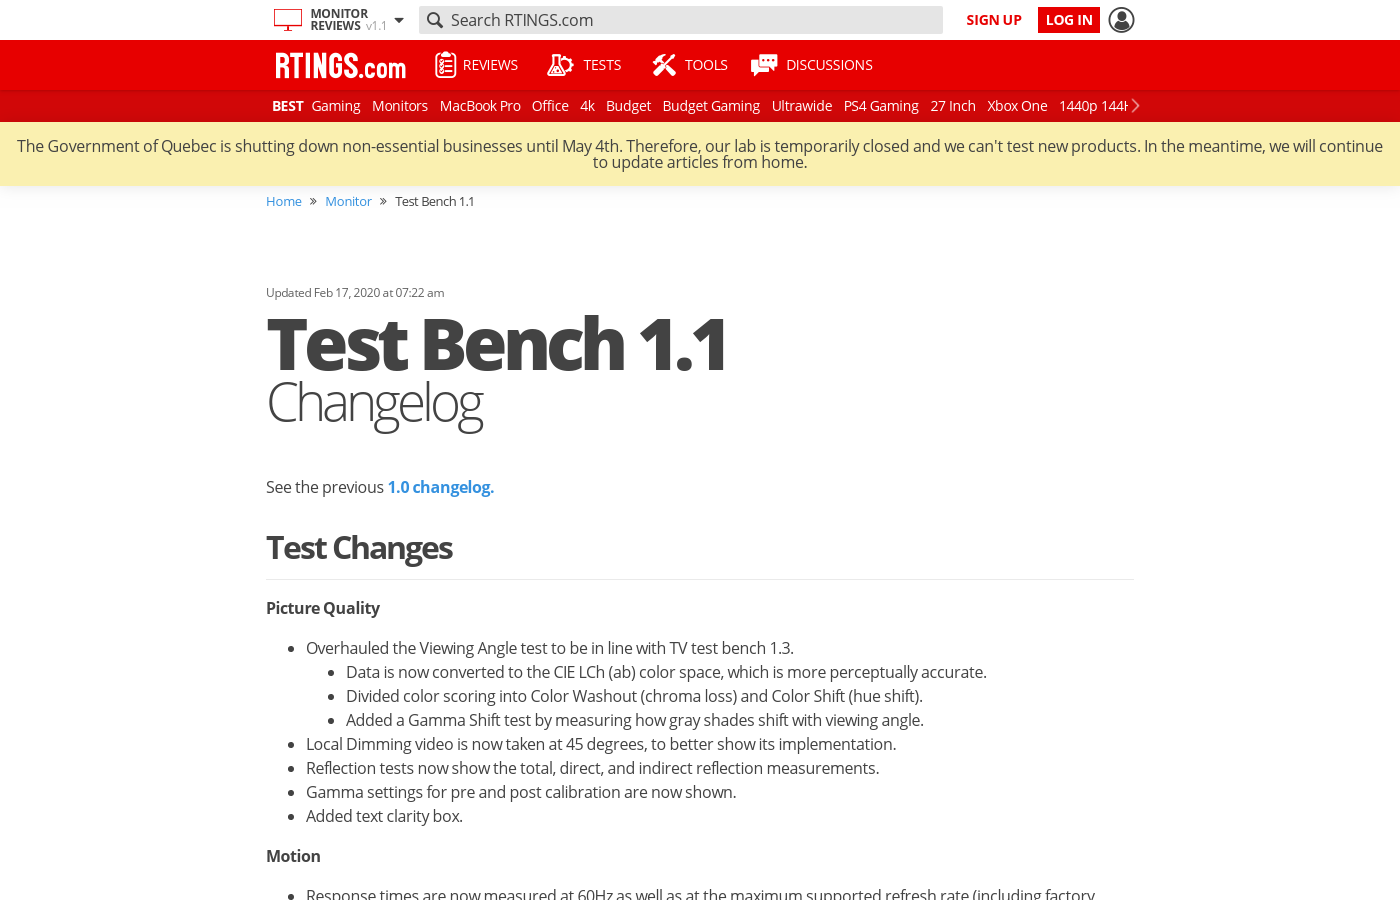 Test Bench 1.1: Changelog